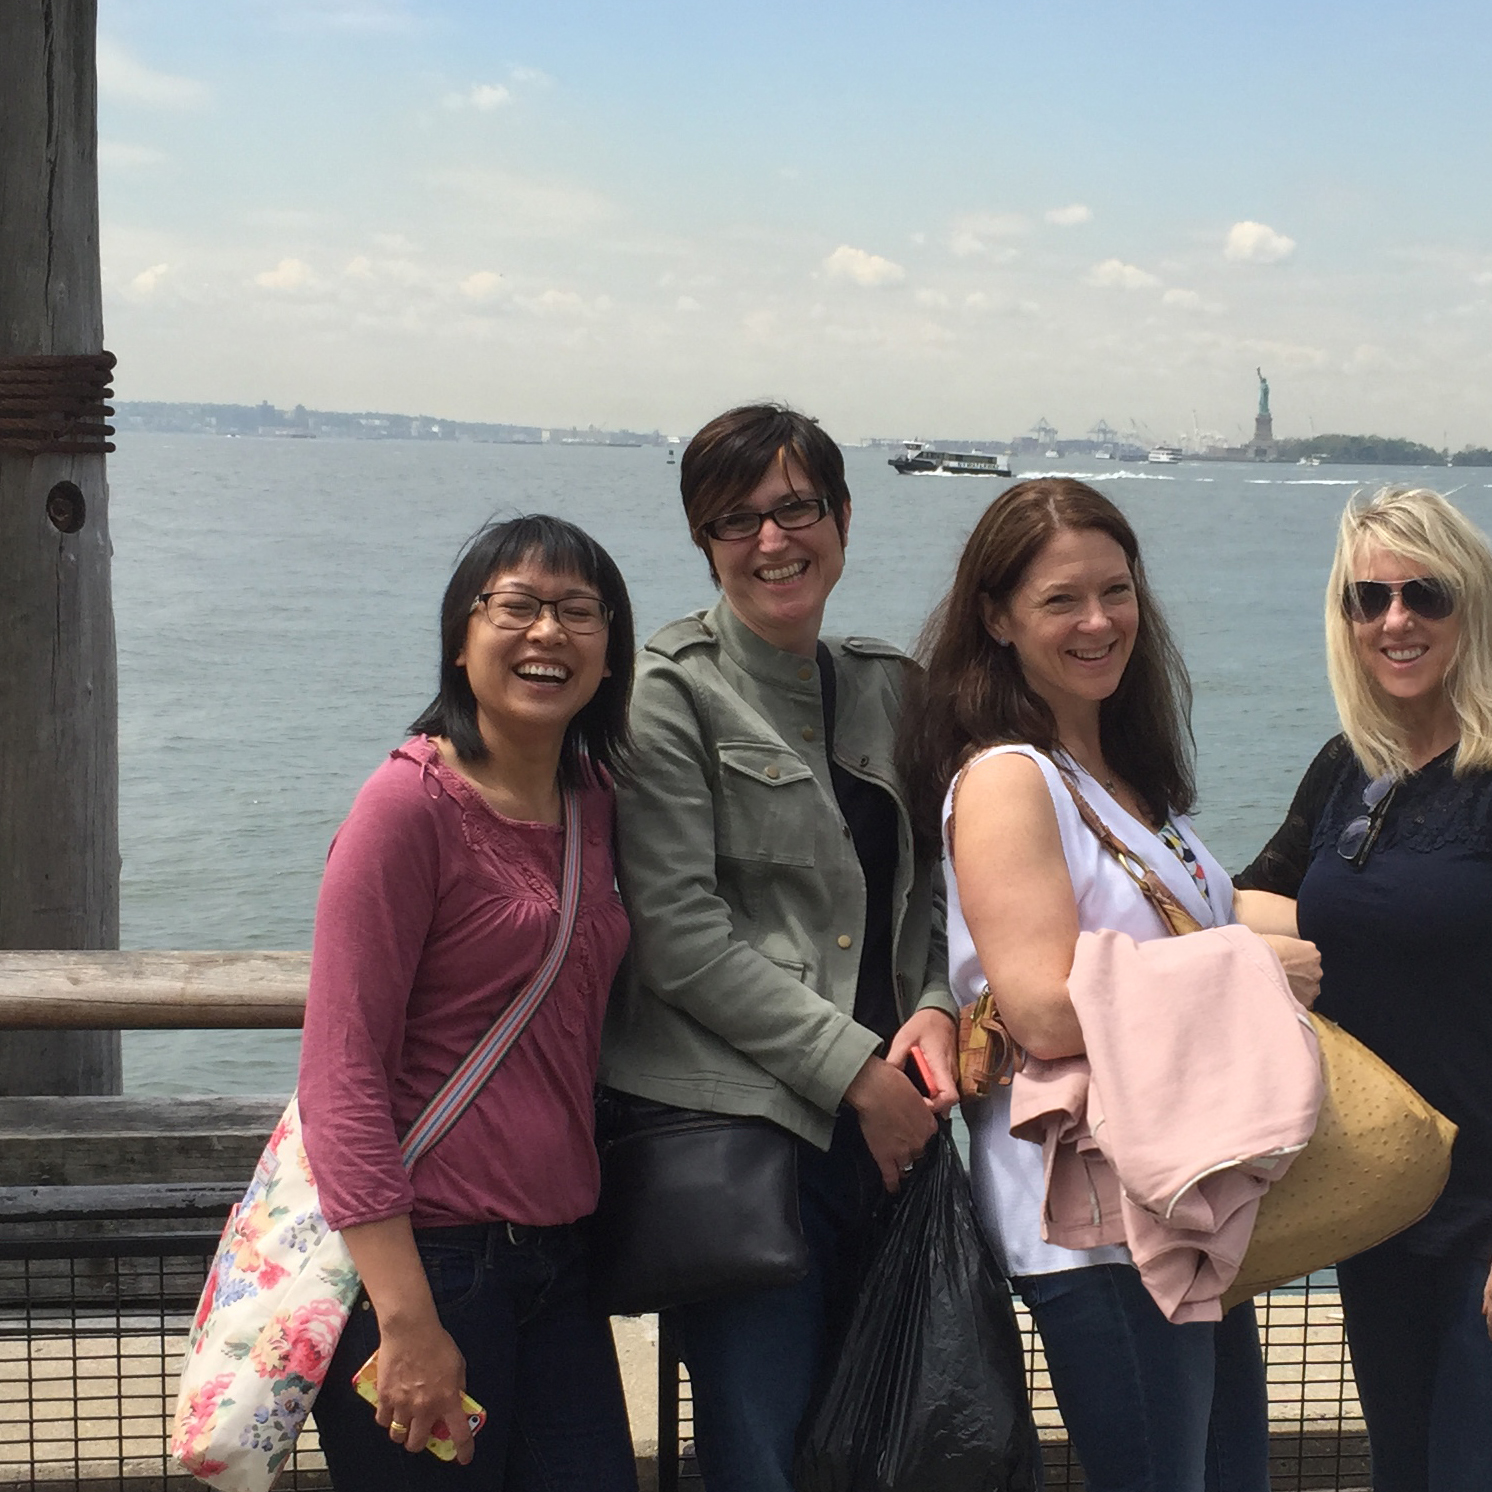 A visit to Lady Liberty. Pictured: Ohn Mar Win, Claire Picard, Harriet Mellor and Corinne Haig.